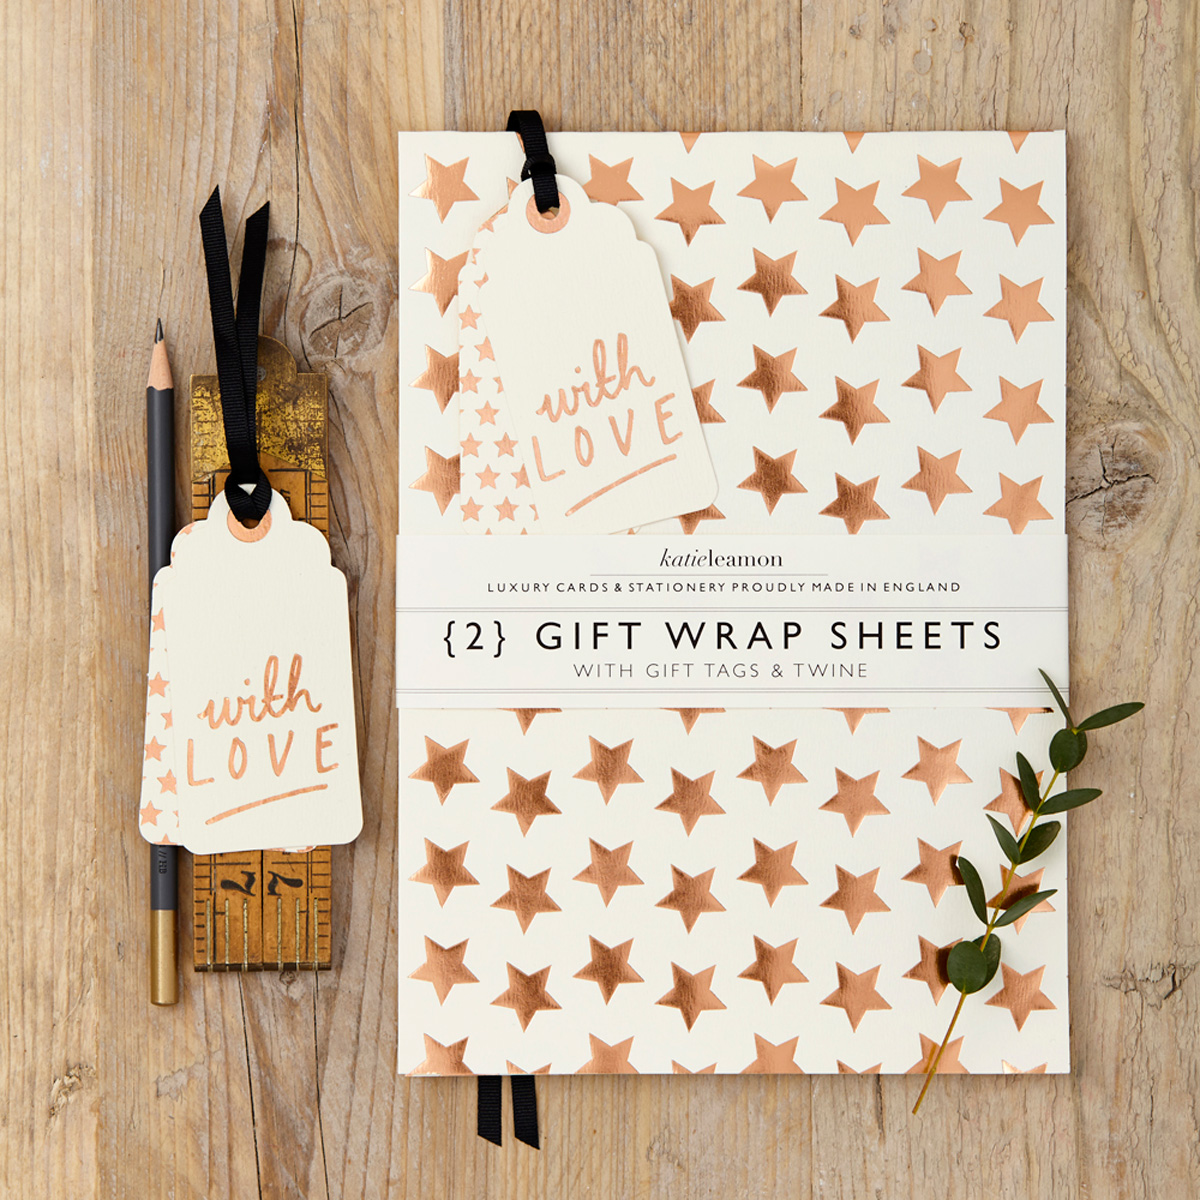 Katie Leamon luxury gold star gift wrap sheets